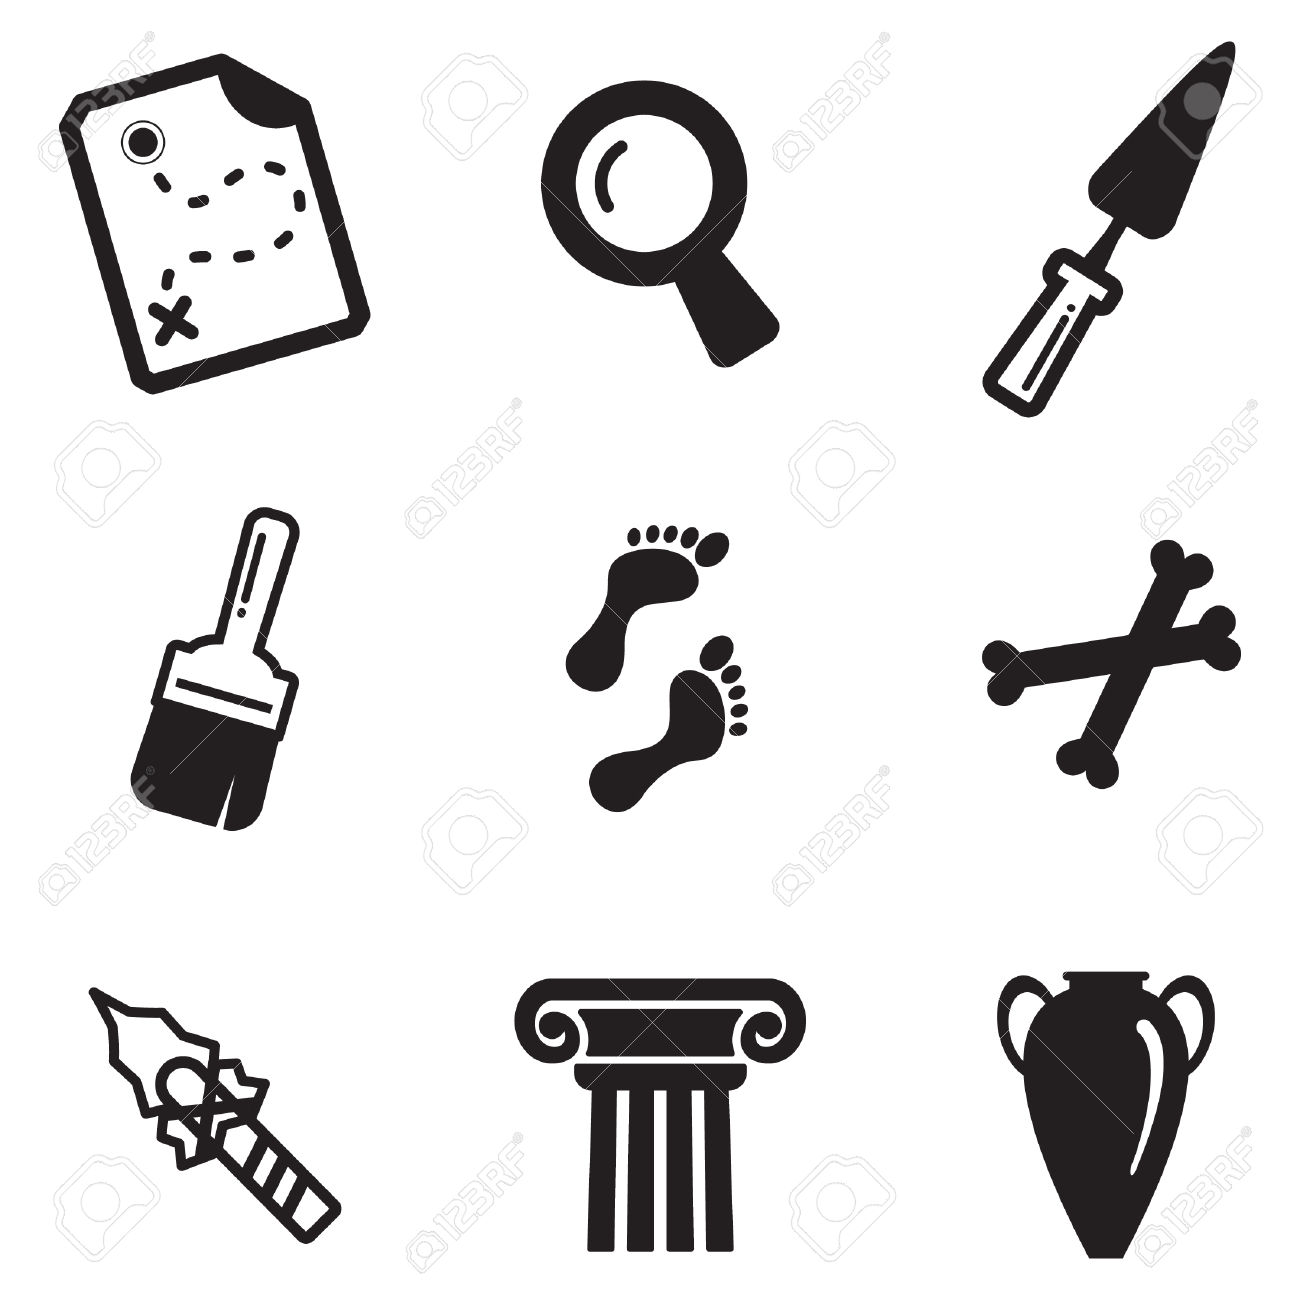 archeology clipart free #4